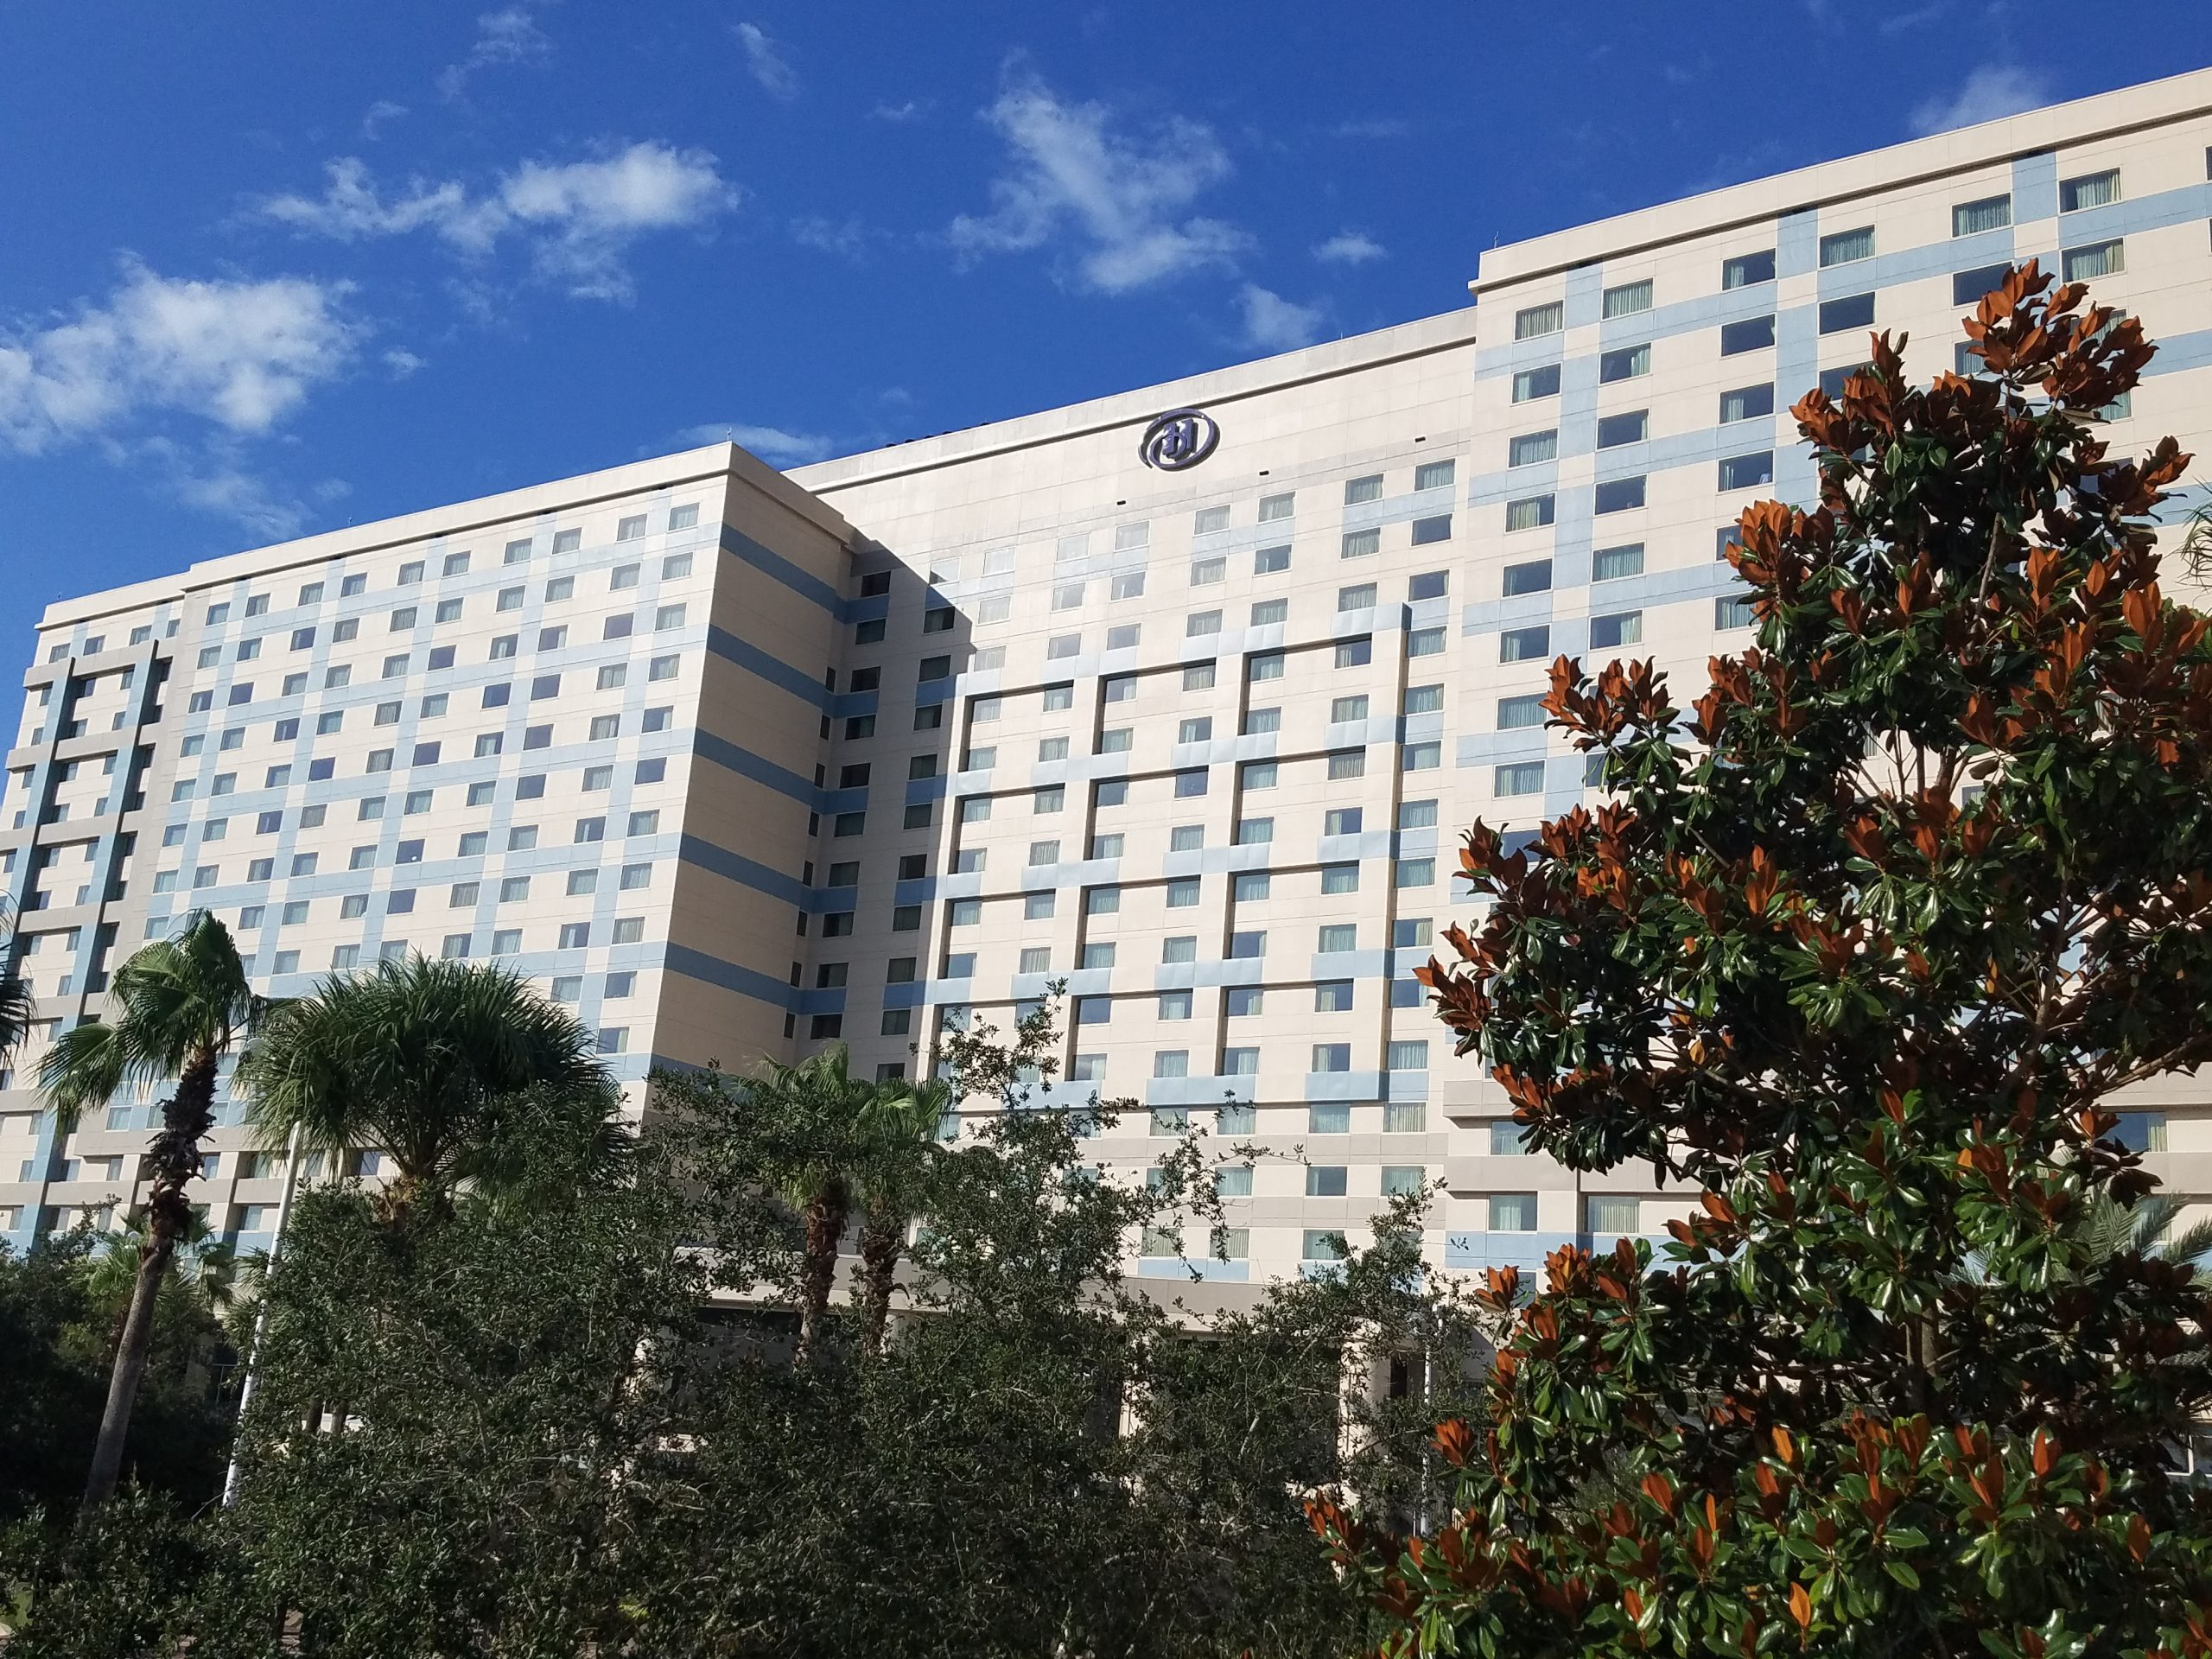 My stay at the Hilton Orlando Bonnet Creek for BlogHer 17